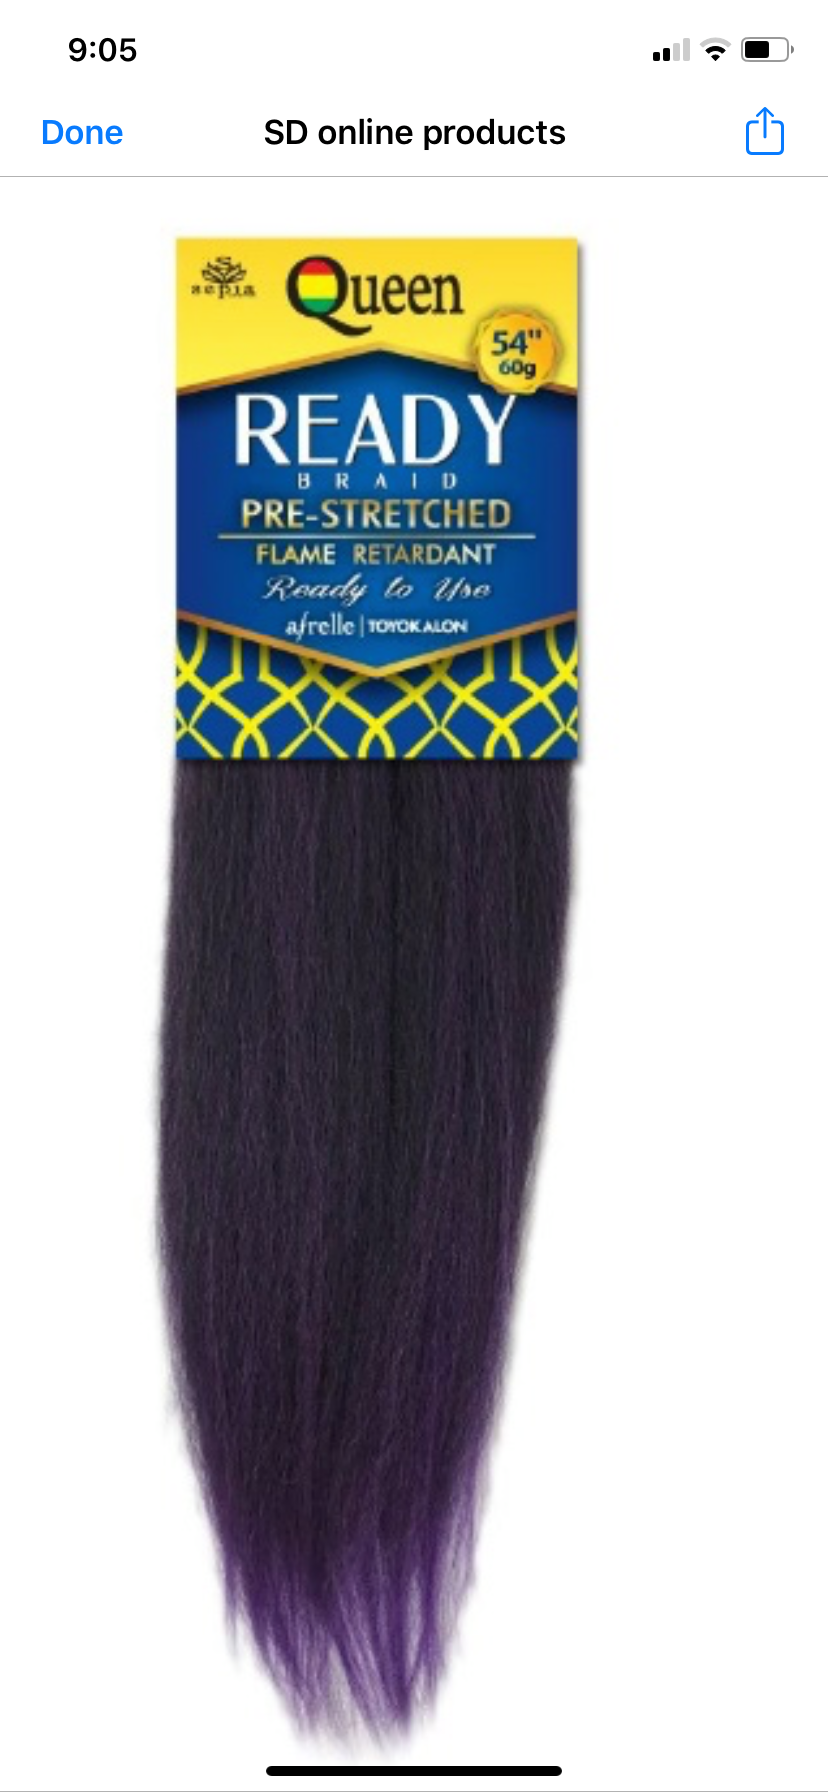 Queen Ready Braid     54''